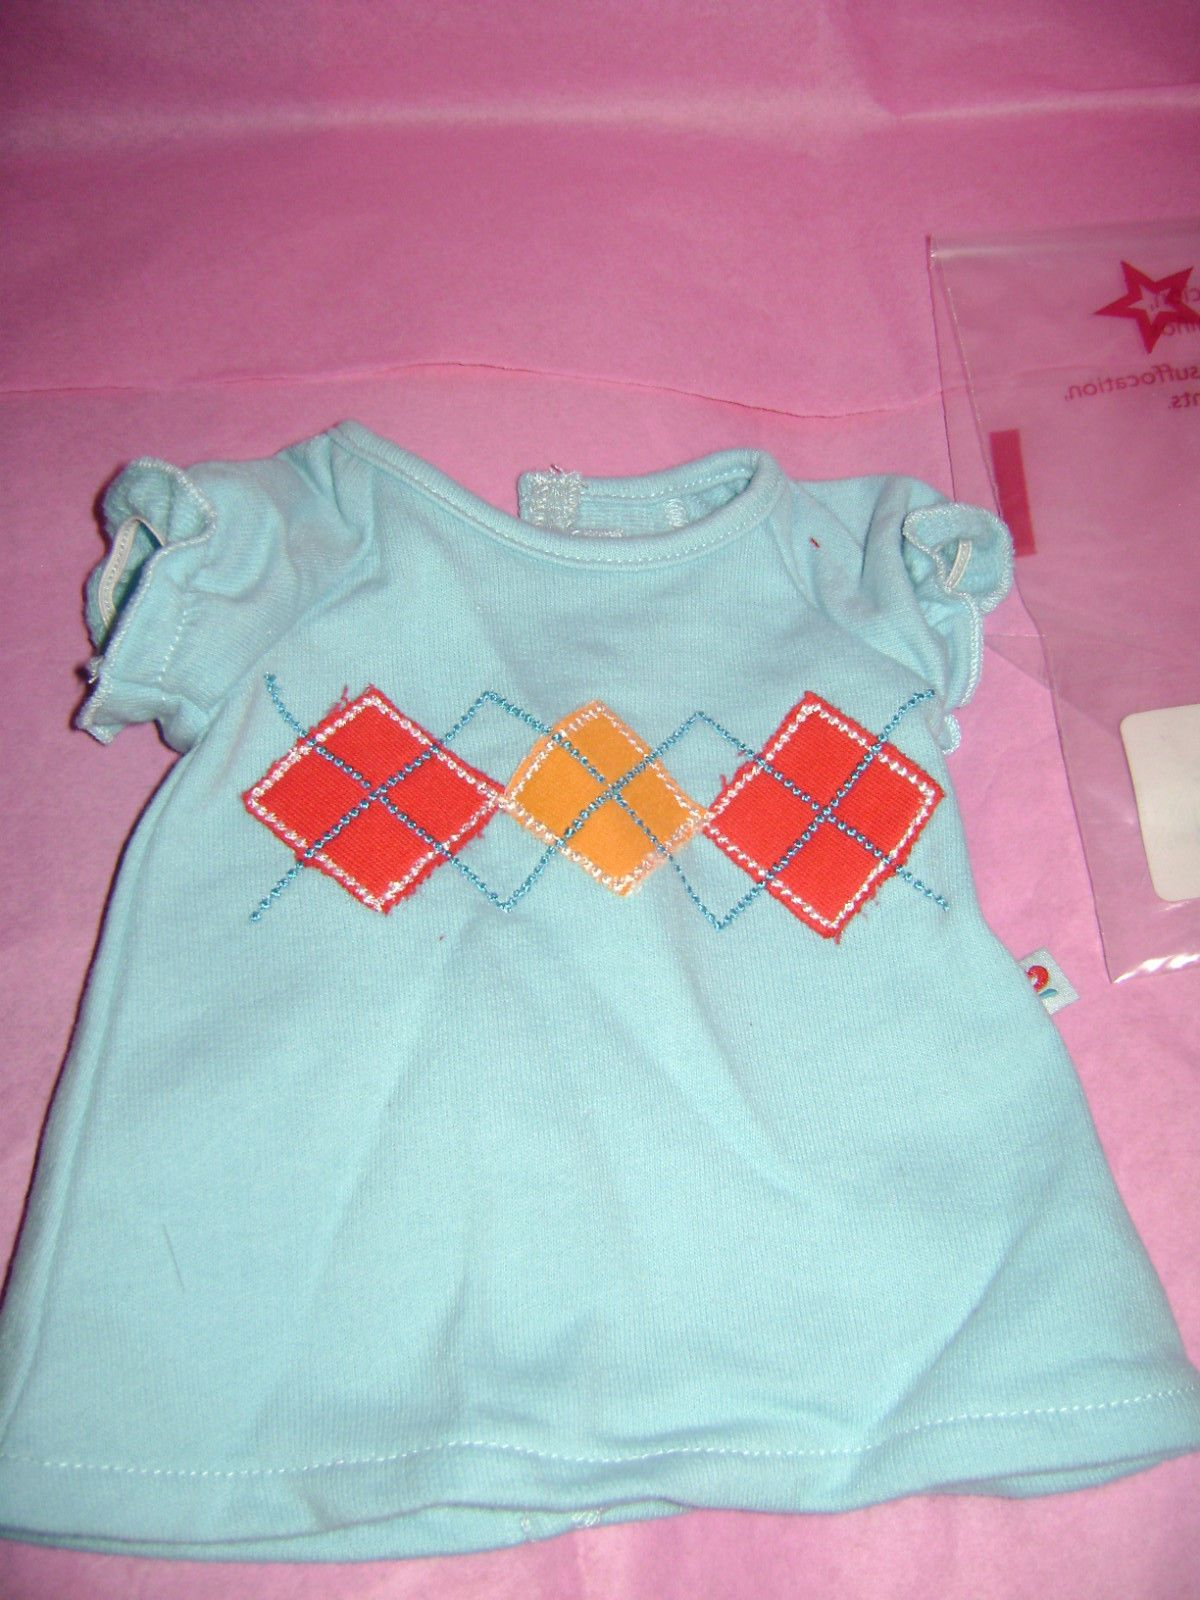 American Girl Bitty Twins FAIR ISLE SKIRT SET headband sweater  No doll baby